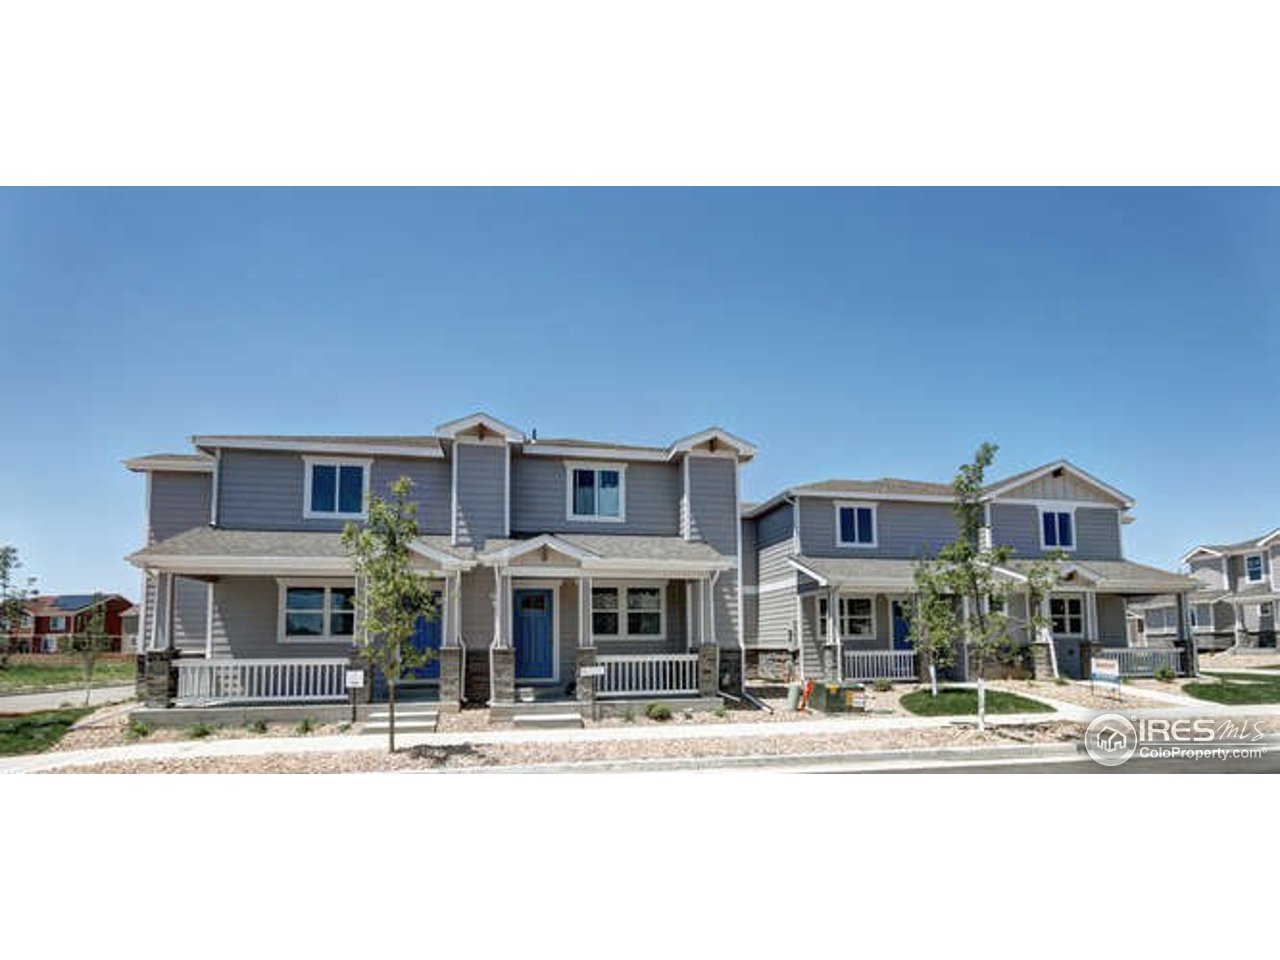 Glasco Park Townhomes is a luxury townhouse development in Wyndham Hill. Low Maintenance living at its finest!! Convenient to Boulder,Denver,and DIA. Granite countertops, tile/wood flooring, 2 stall garage, unfinished basements ready for expansion, and much more! Many floor plans to choose from including main floor masters. Over $15,000 in upgrades already included. Look for Harmony Brokers Signs. Model is 6107 Kochia #107 open most days.Check the open house link for exact times.